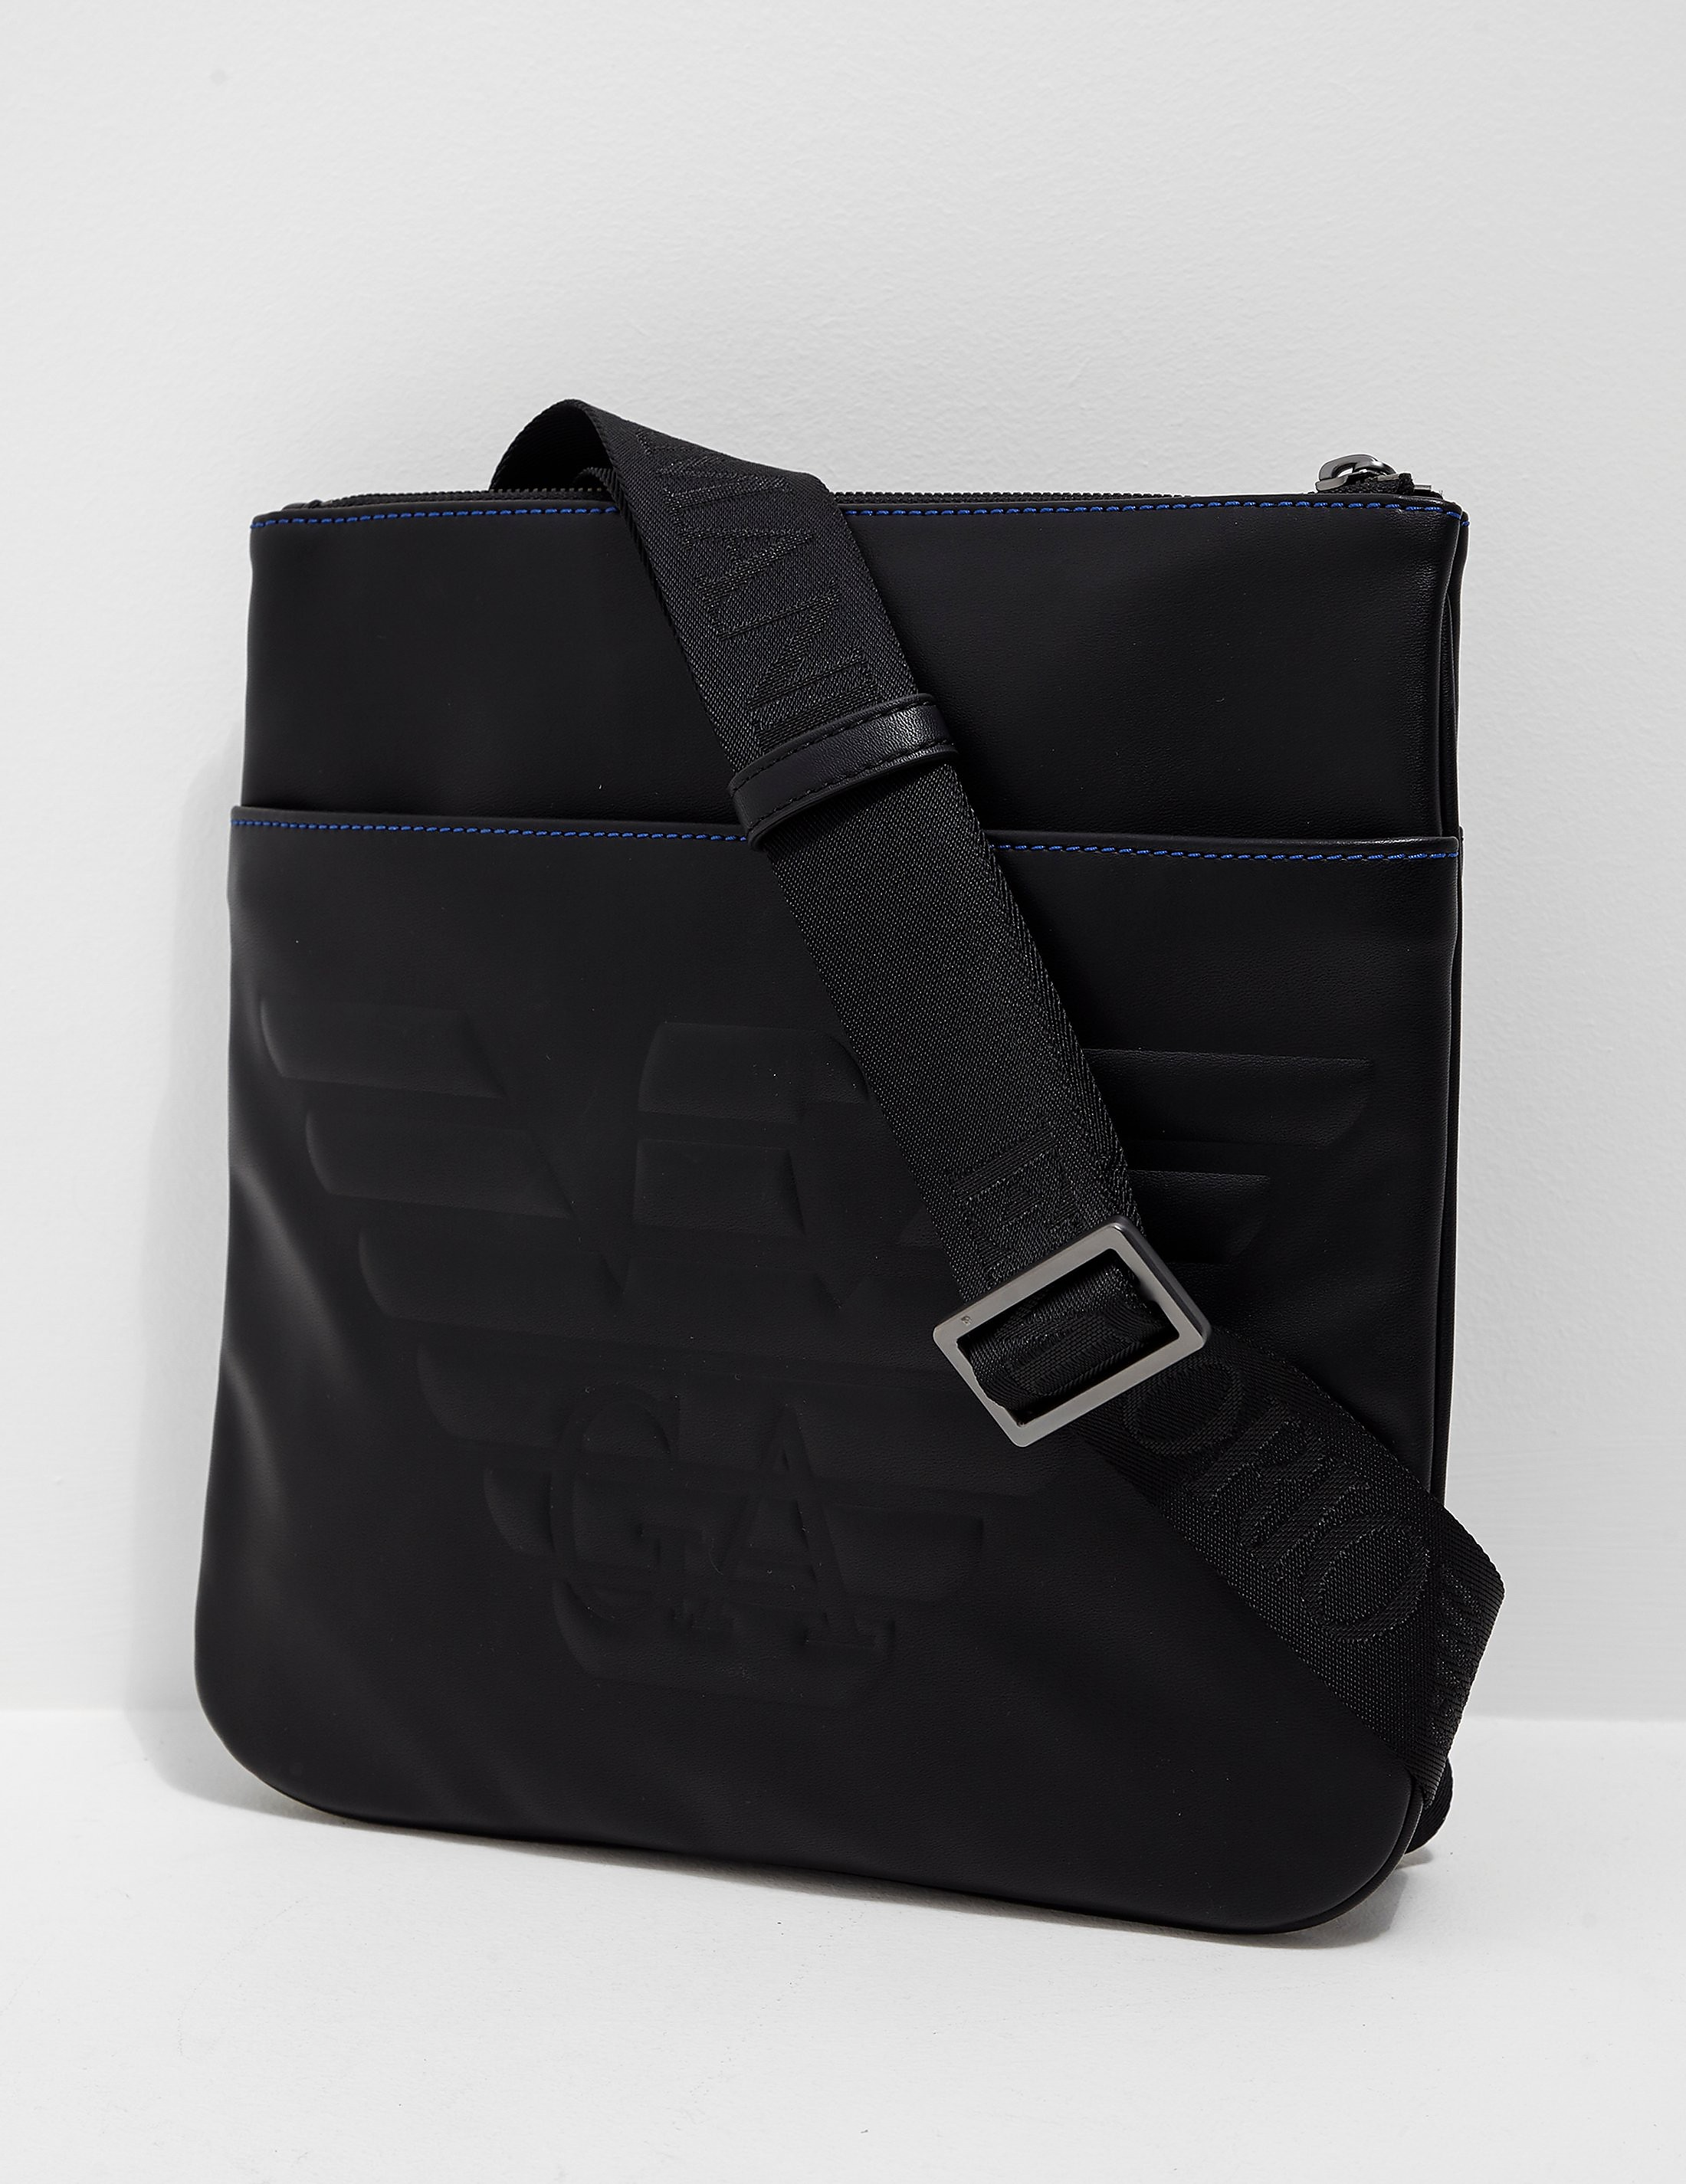 Emporio Armani Eagle Small Item Bag